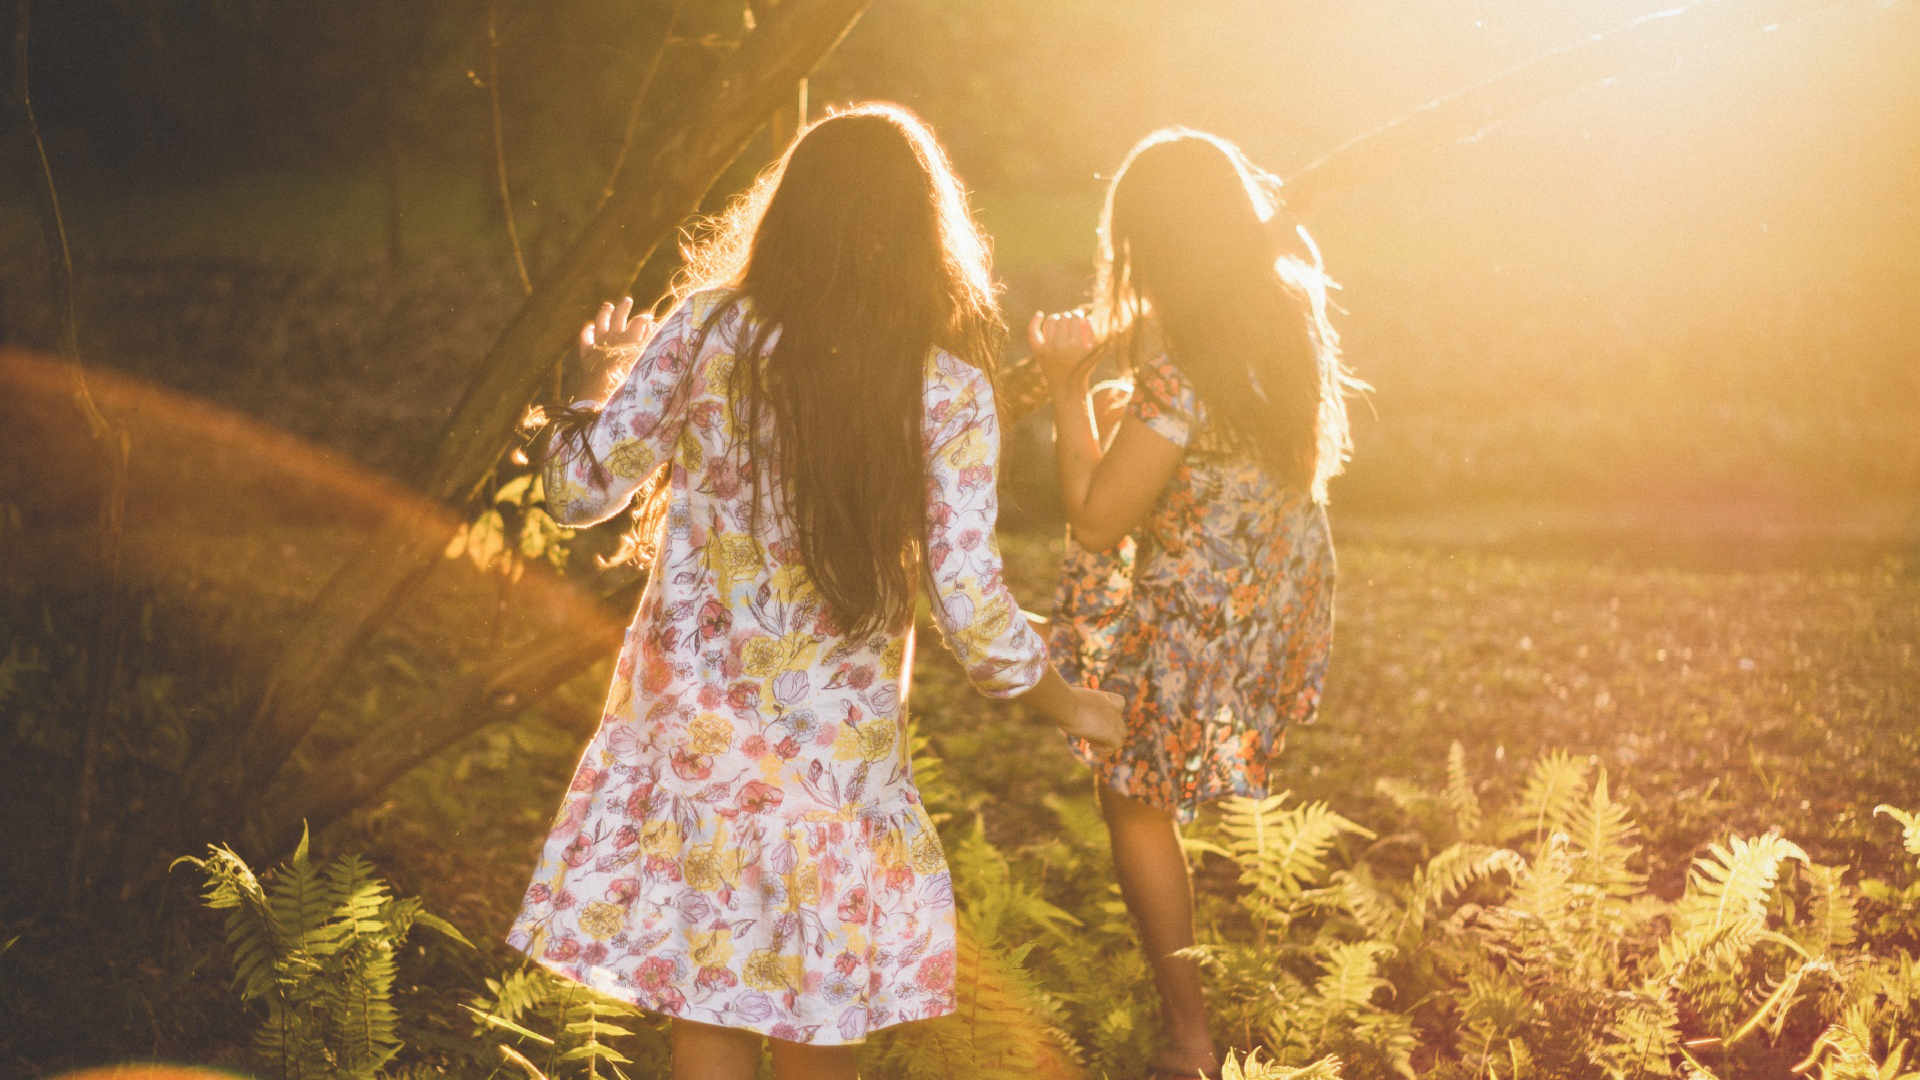 summer,outdoor,love,people,dearest,female,admirer,supporter,making love,girls,young,sunlight,young woman,ally,exploring,little girl,confederate,friends,booster,lady friend,playing,havingfun,friendship,childhood